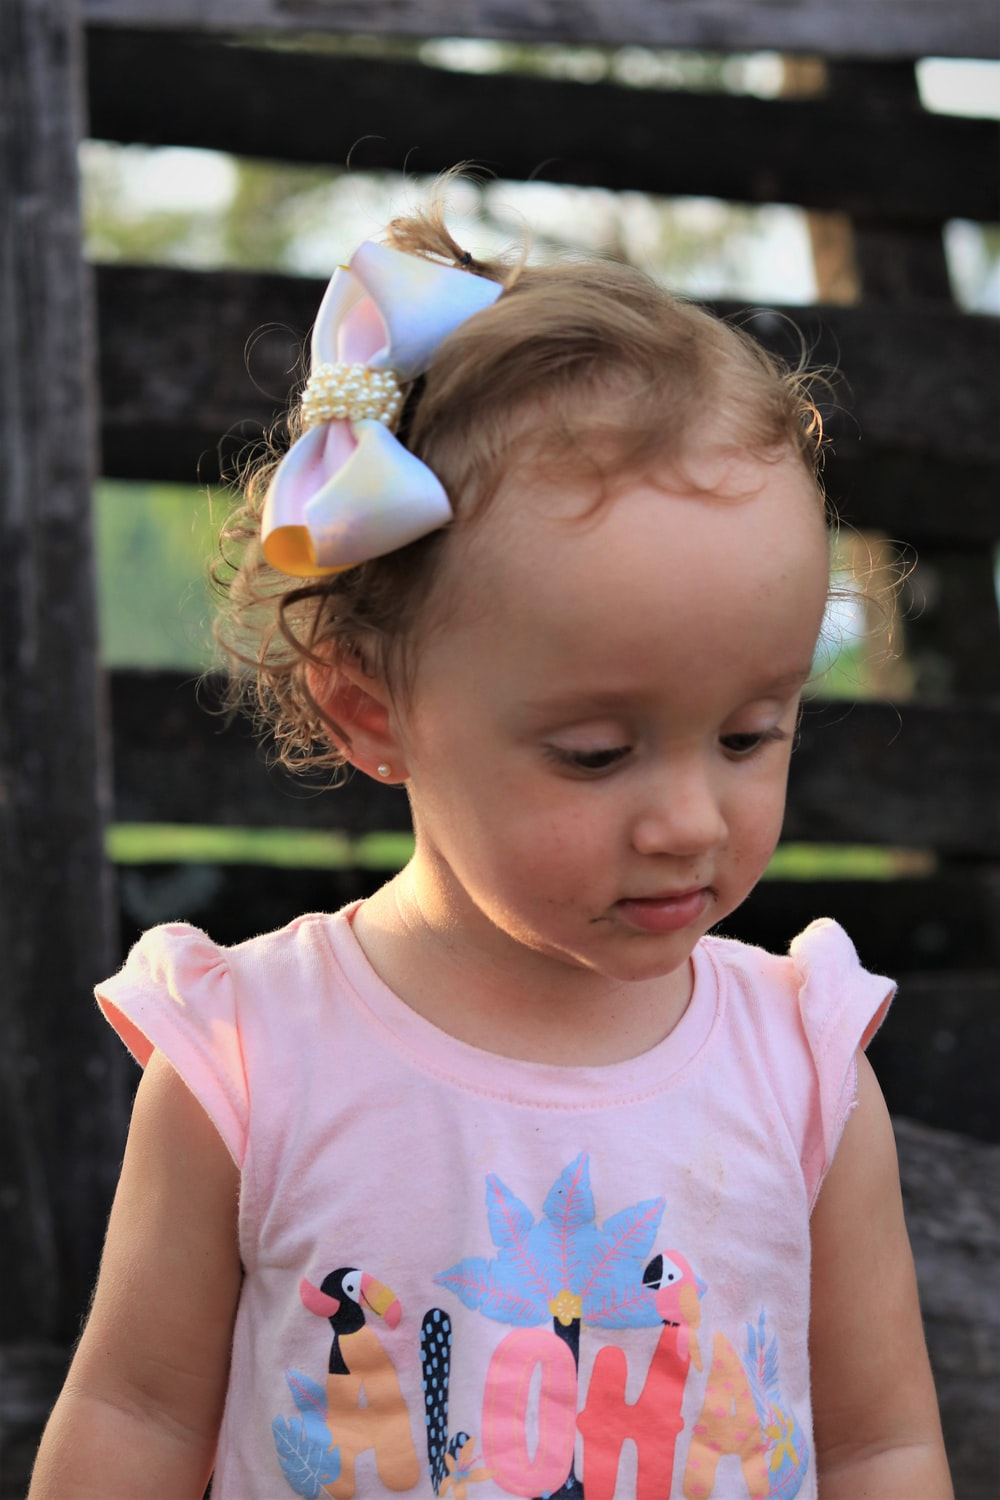 girl in pink tank top with white and yellow butterfly headband